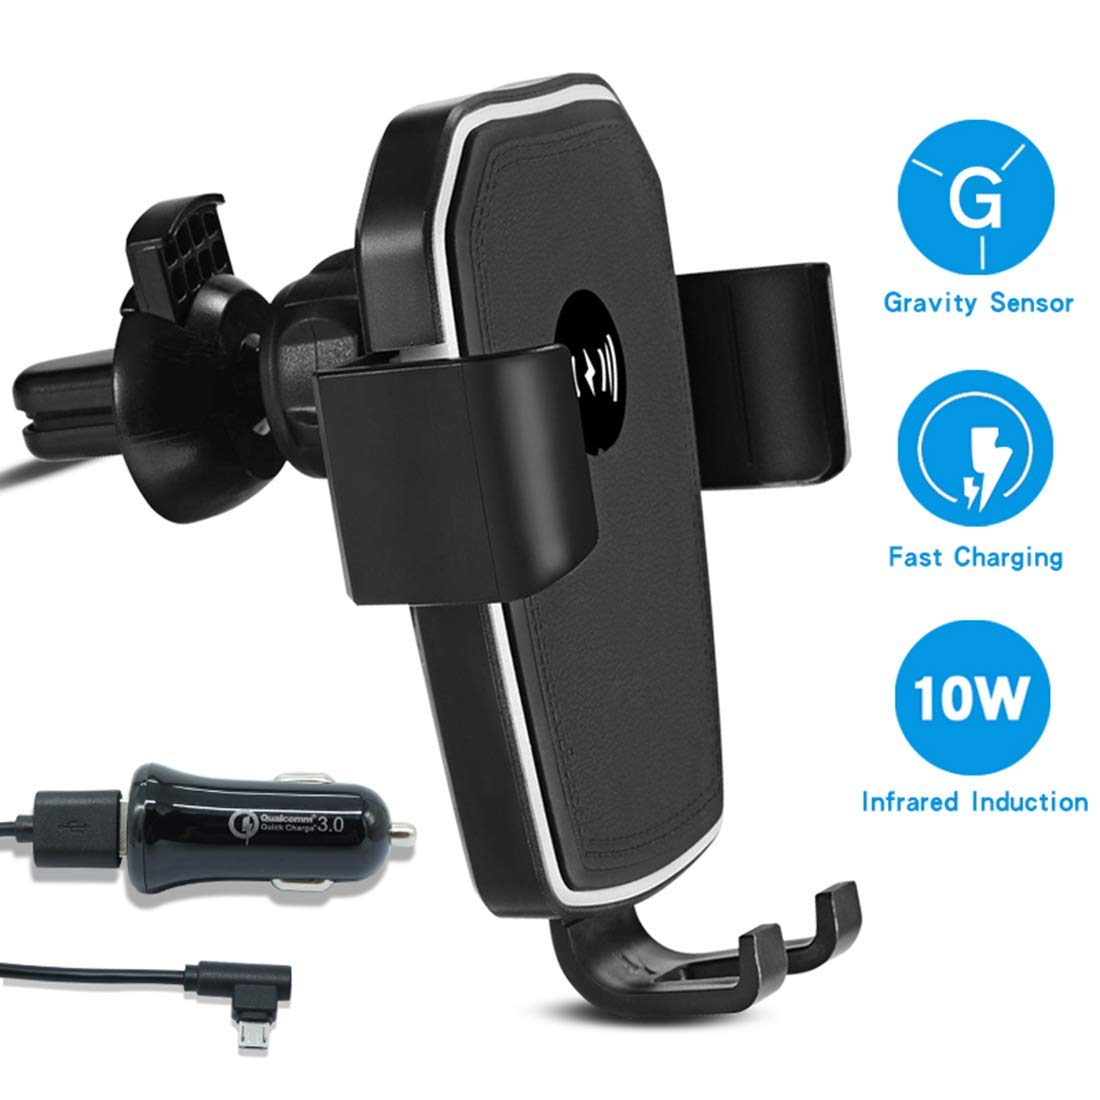 Wireless Charger Car Mount,KaiHangDa Automatic Clamping Gravity Car Phone Charger Mount,10W 7.5W QI Fast Charger Air Vent Phone Holder Compatible with iPhone Xs Max XR 8, Samsung S10 S9 S8 Note 9